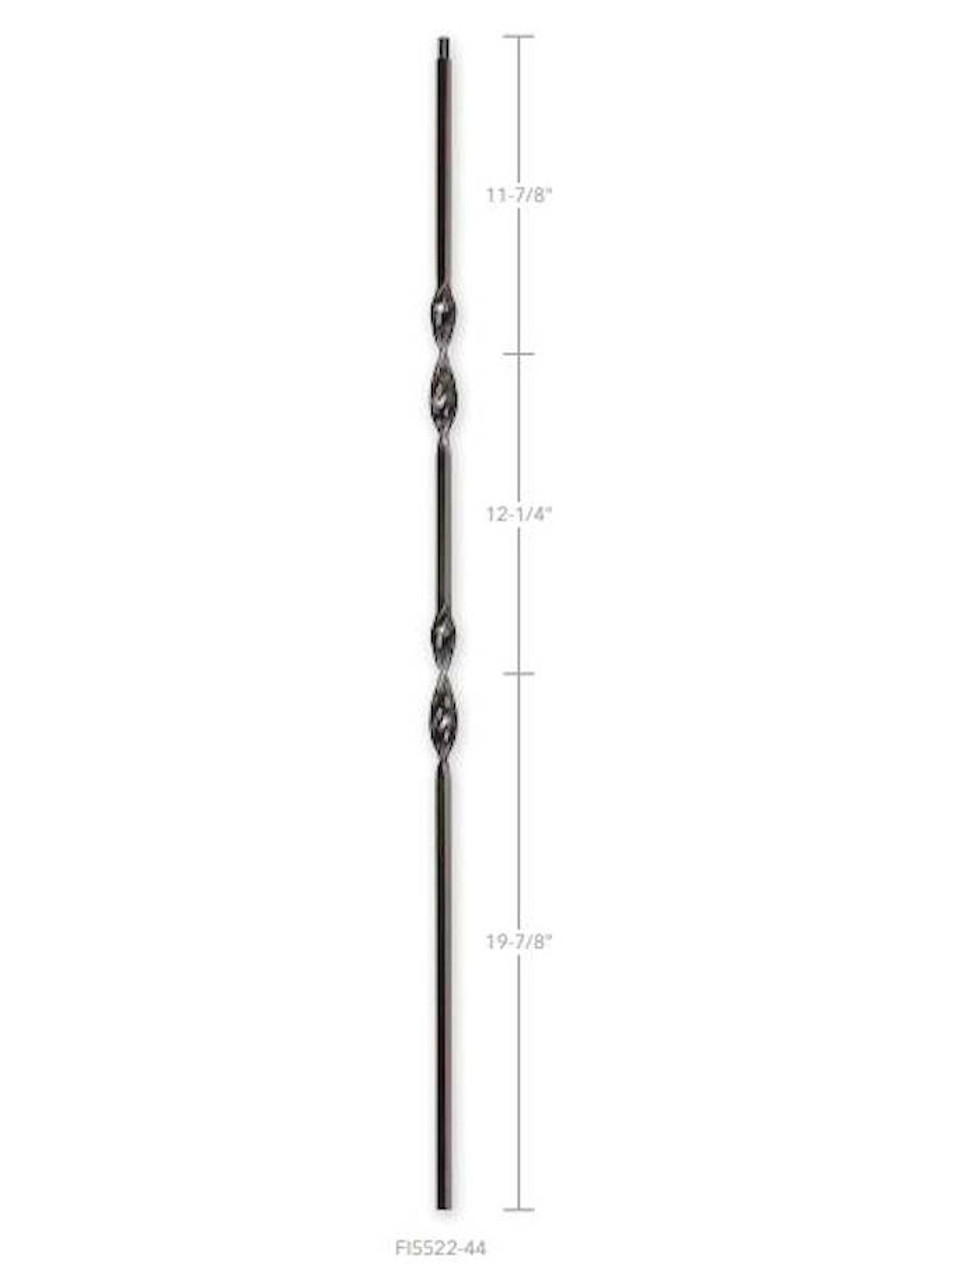 FIH5522-44 Hollow Double (two) Ribbon Iron Baluster